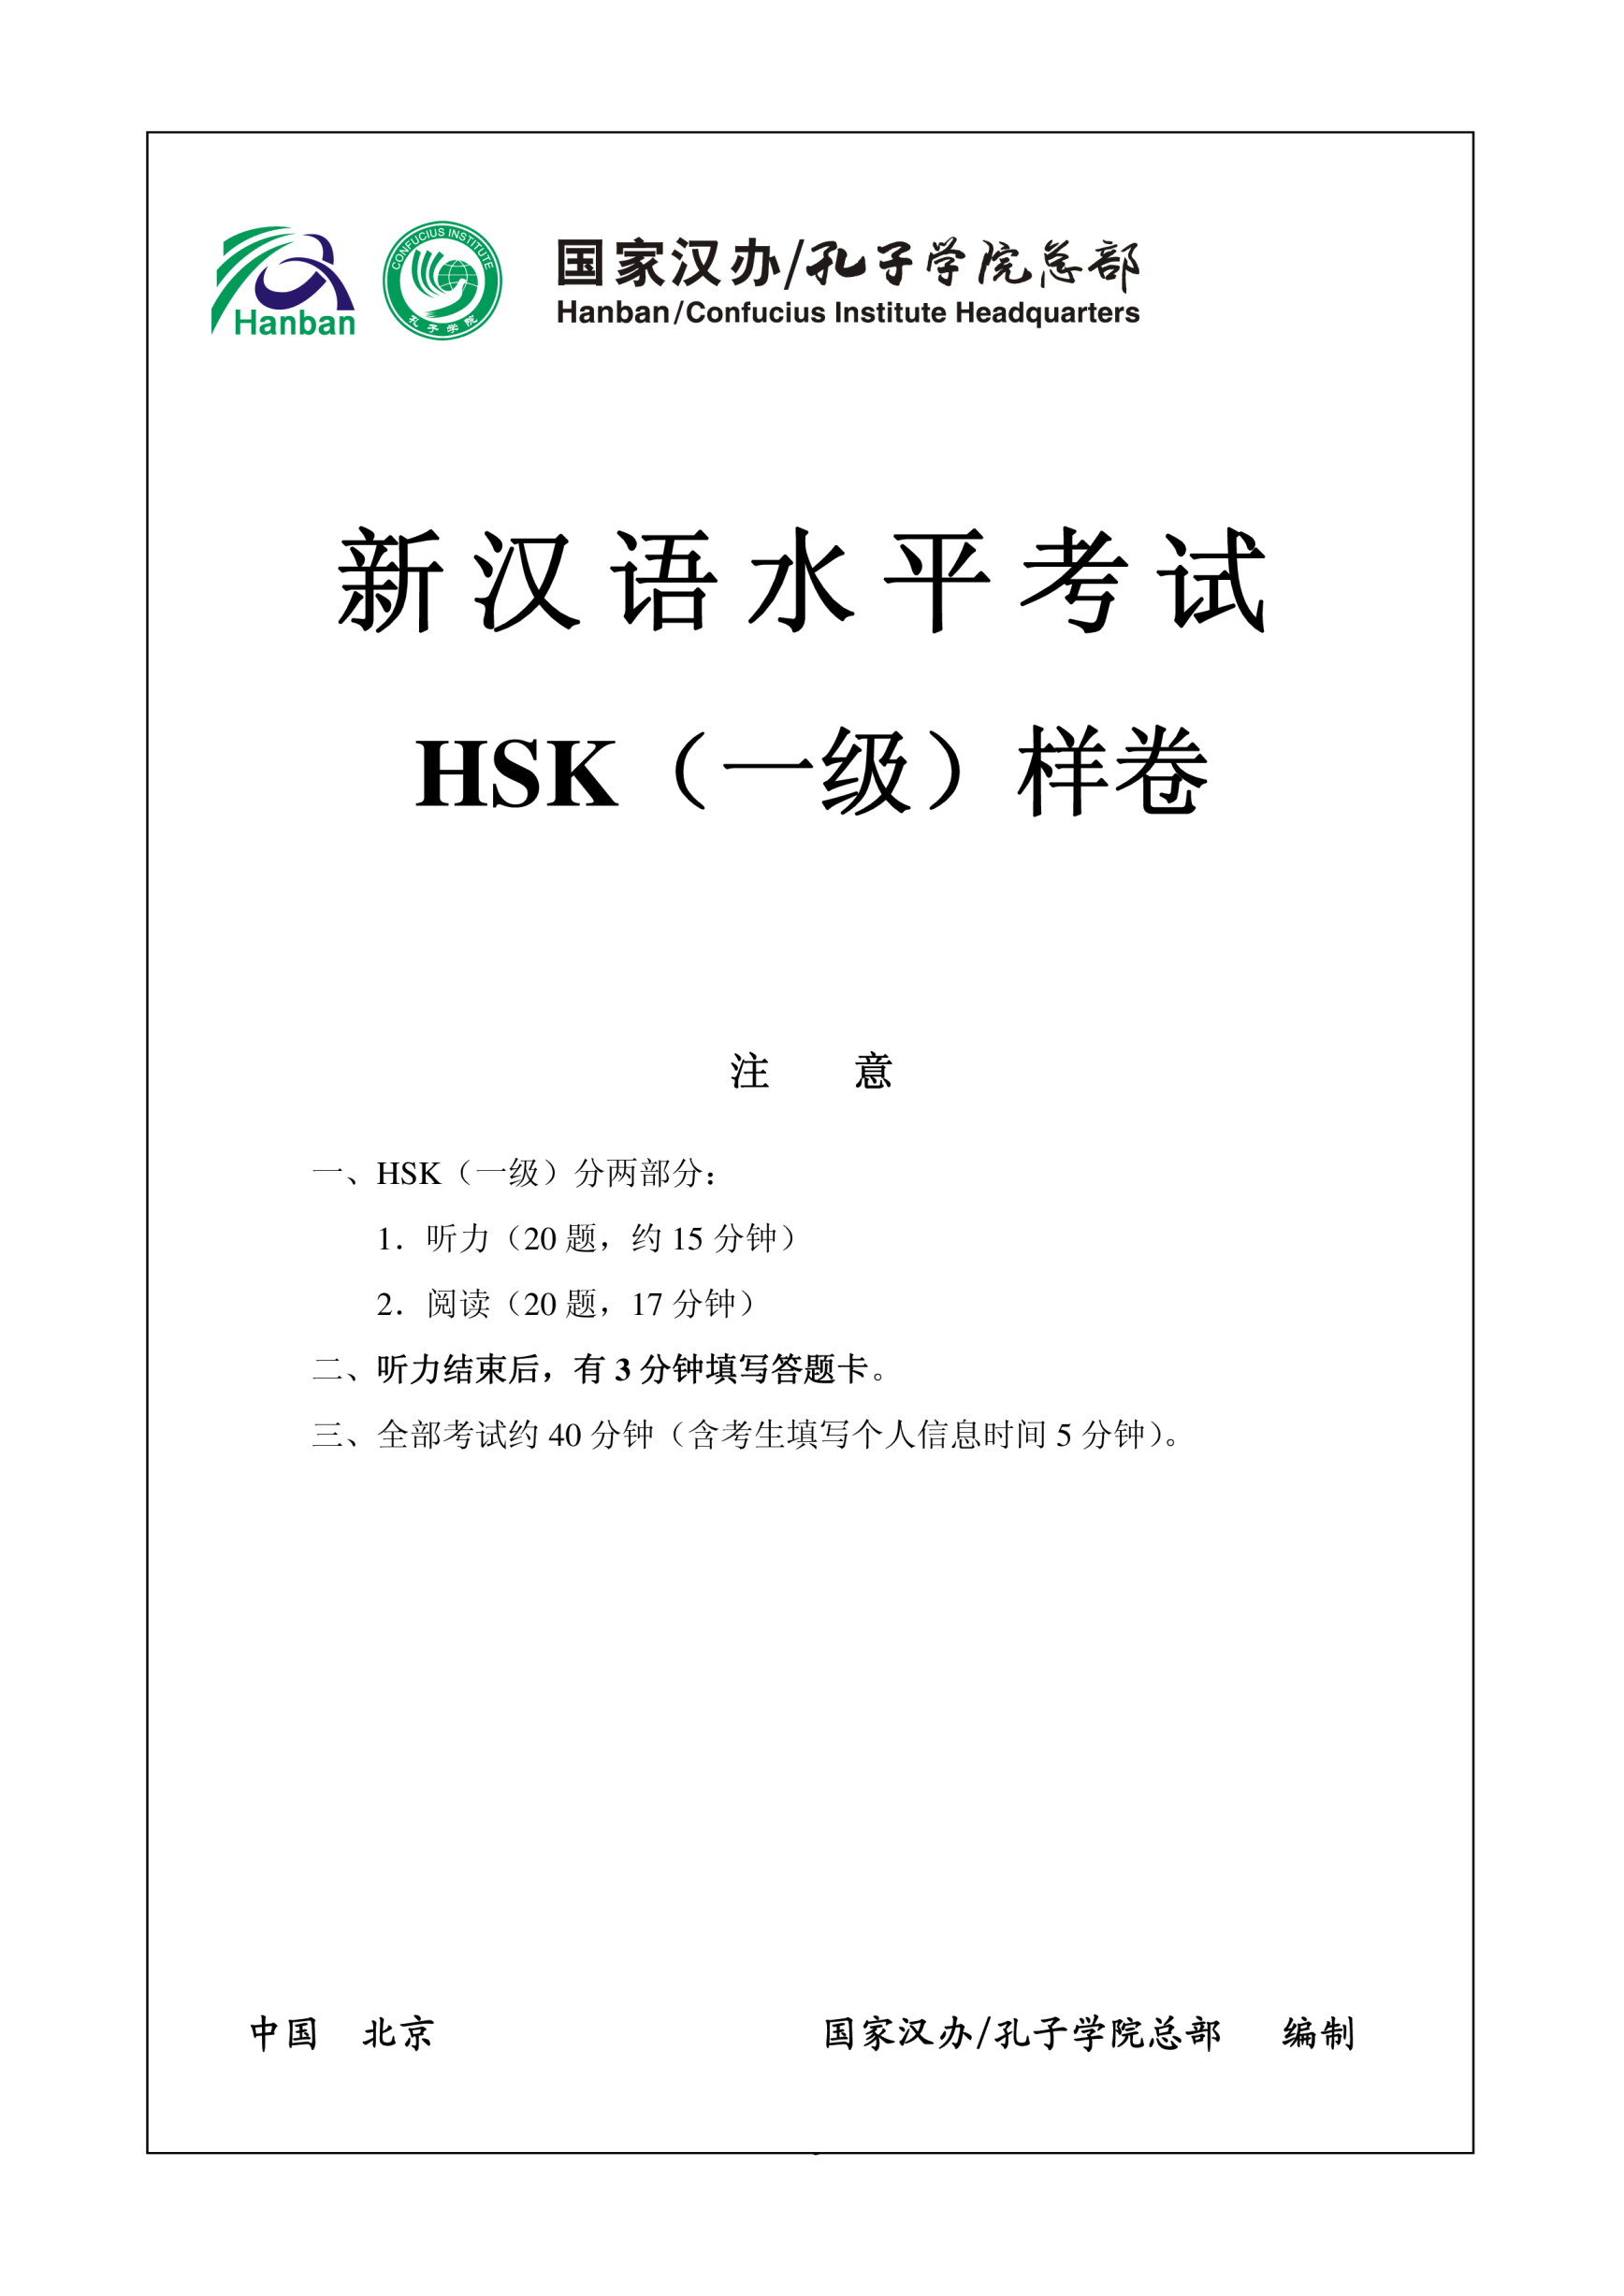 template preview imageHSK1 Chinese Exam including Answers # HSK1 1-1